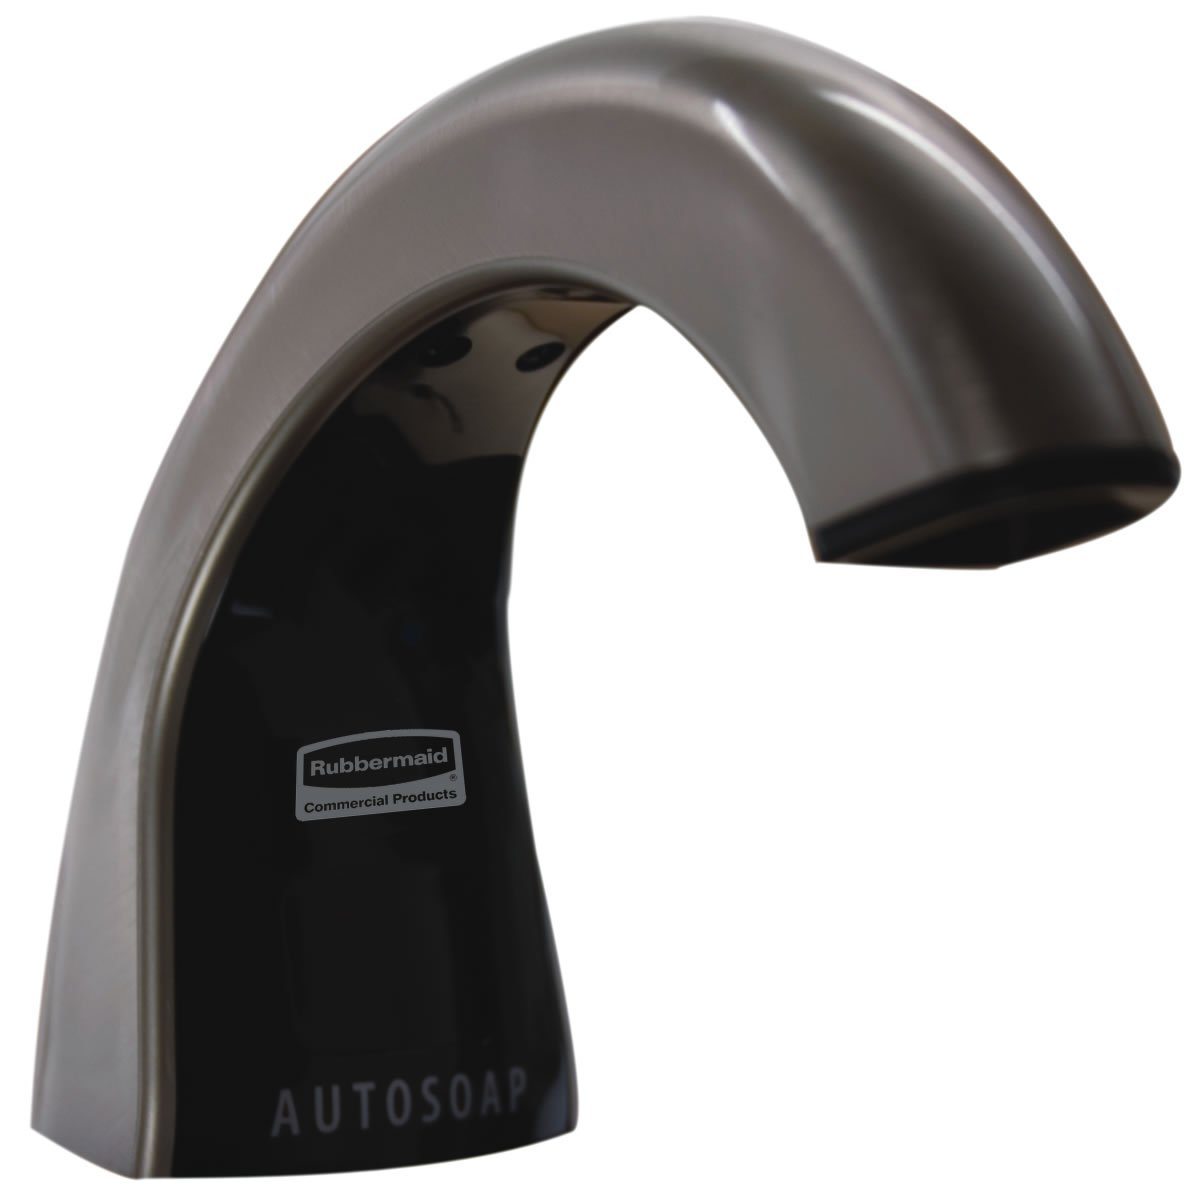 Rubbermaid Commercial Products FG401528 One-Shot Touch-Free Automatic Liquid Soap Dispenser, Brushed Chrome/Black